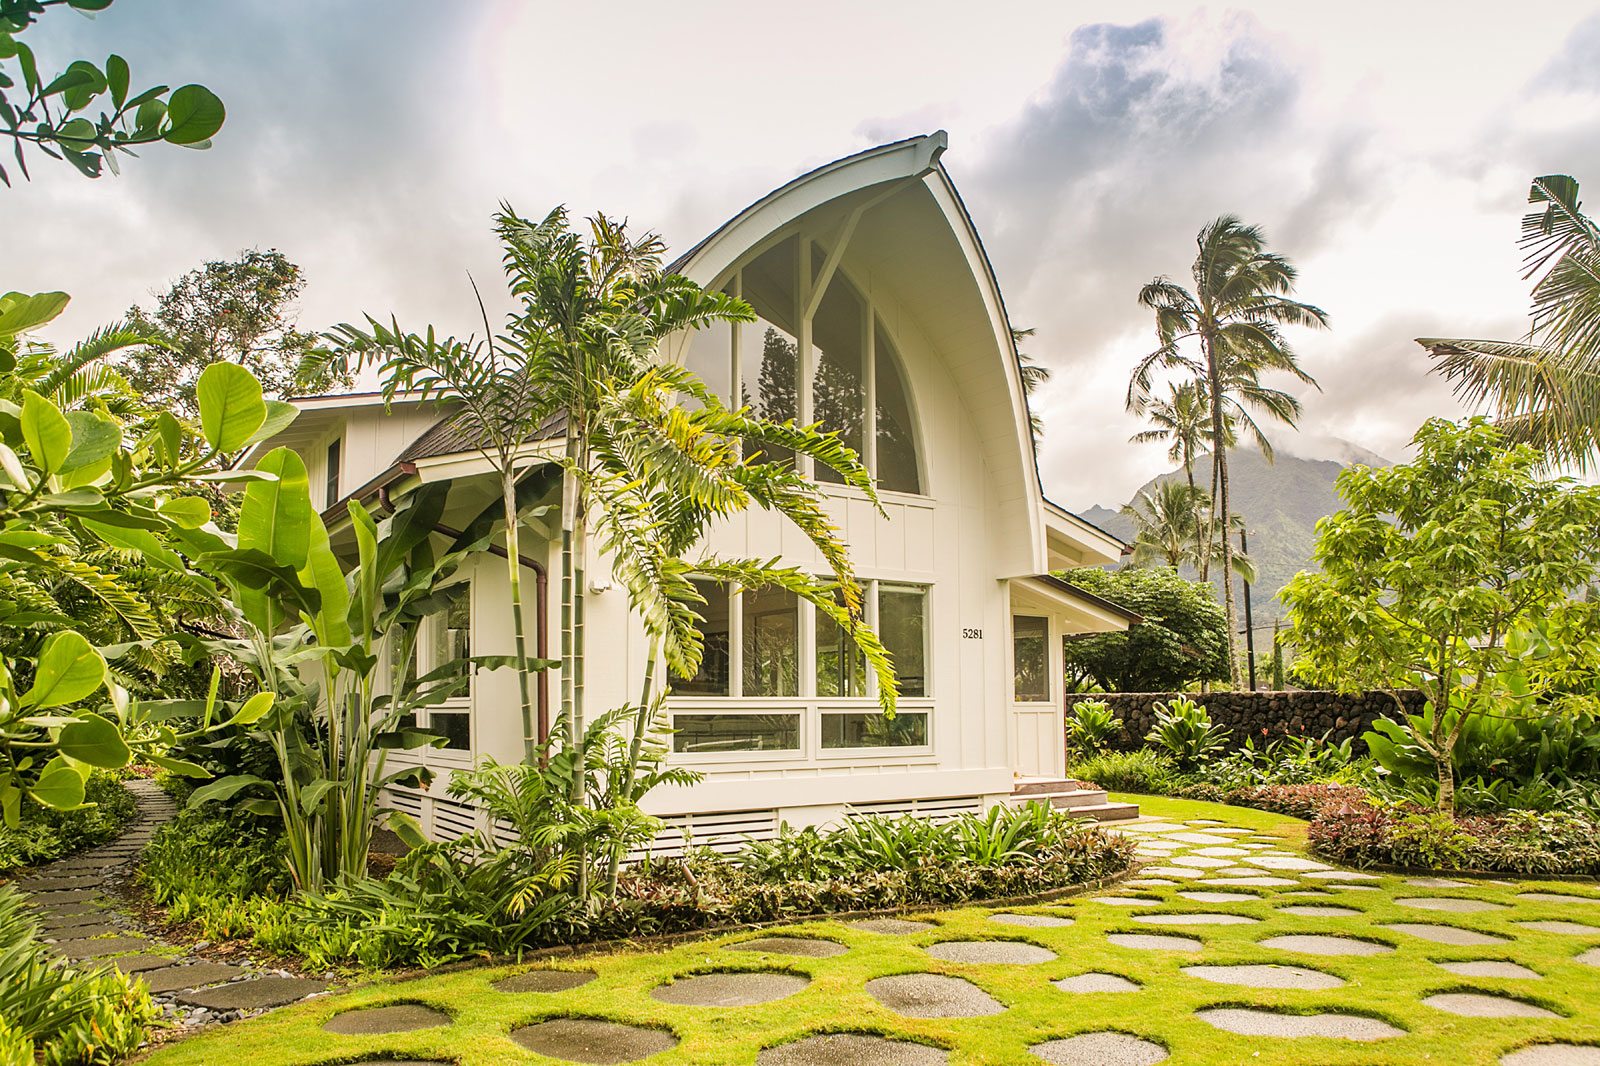 Located in the peaceful town of Hanalei on the island of Kauai, The Bounty House is a landmark home with an unusual boat-like construction.